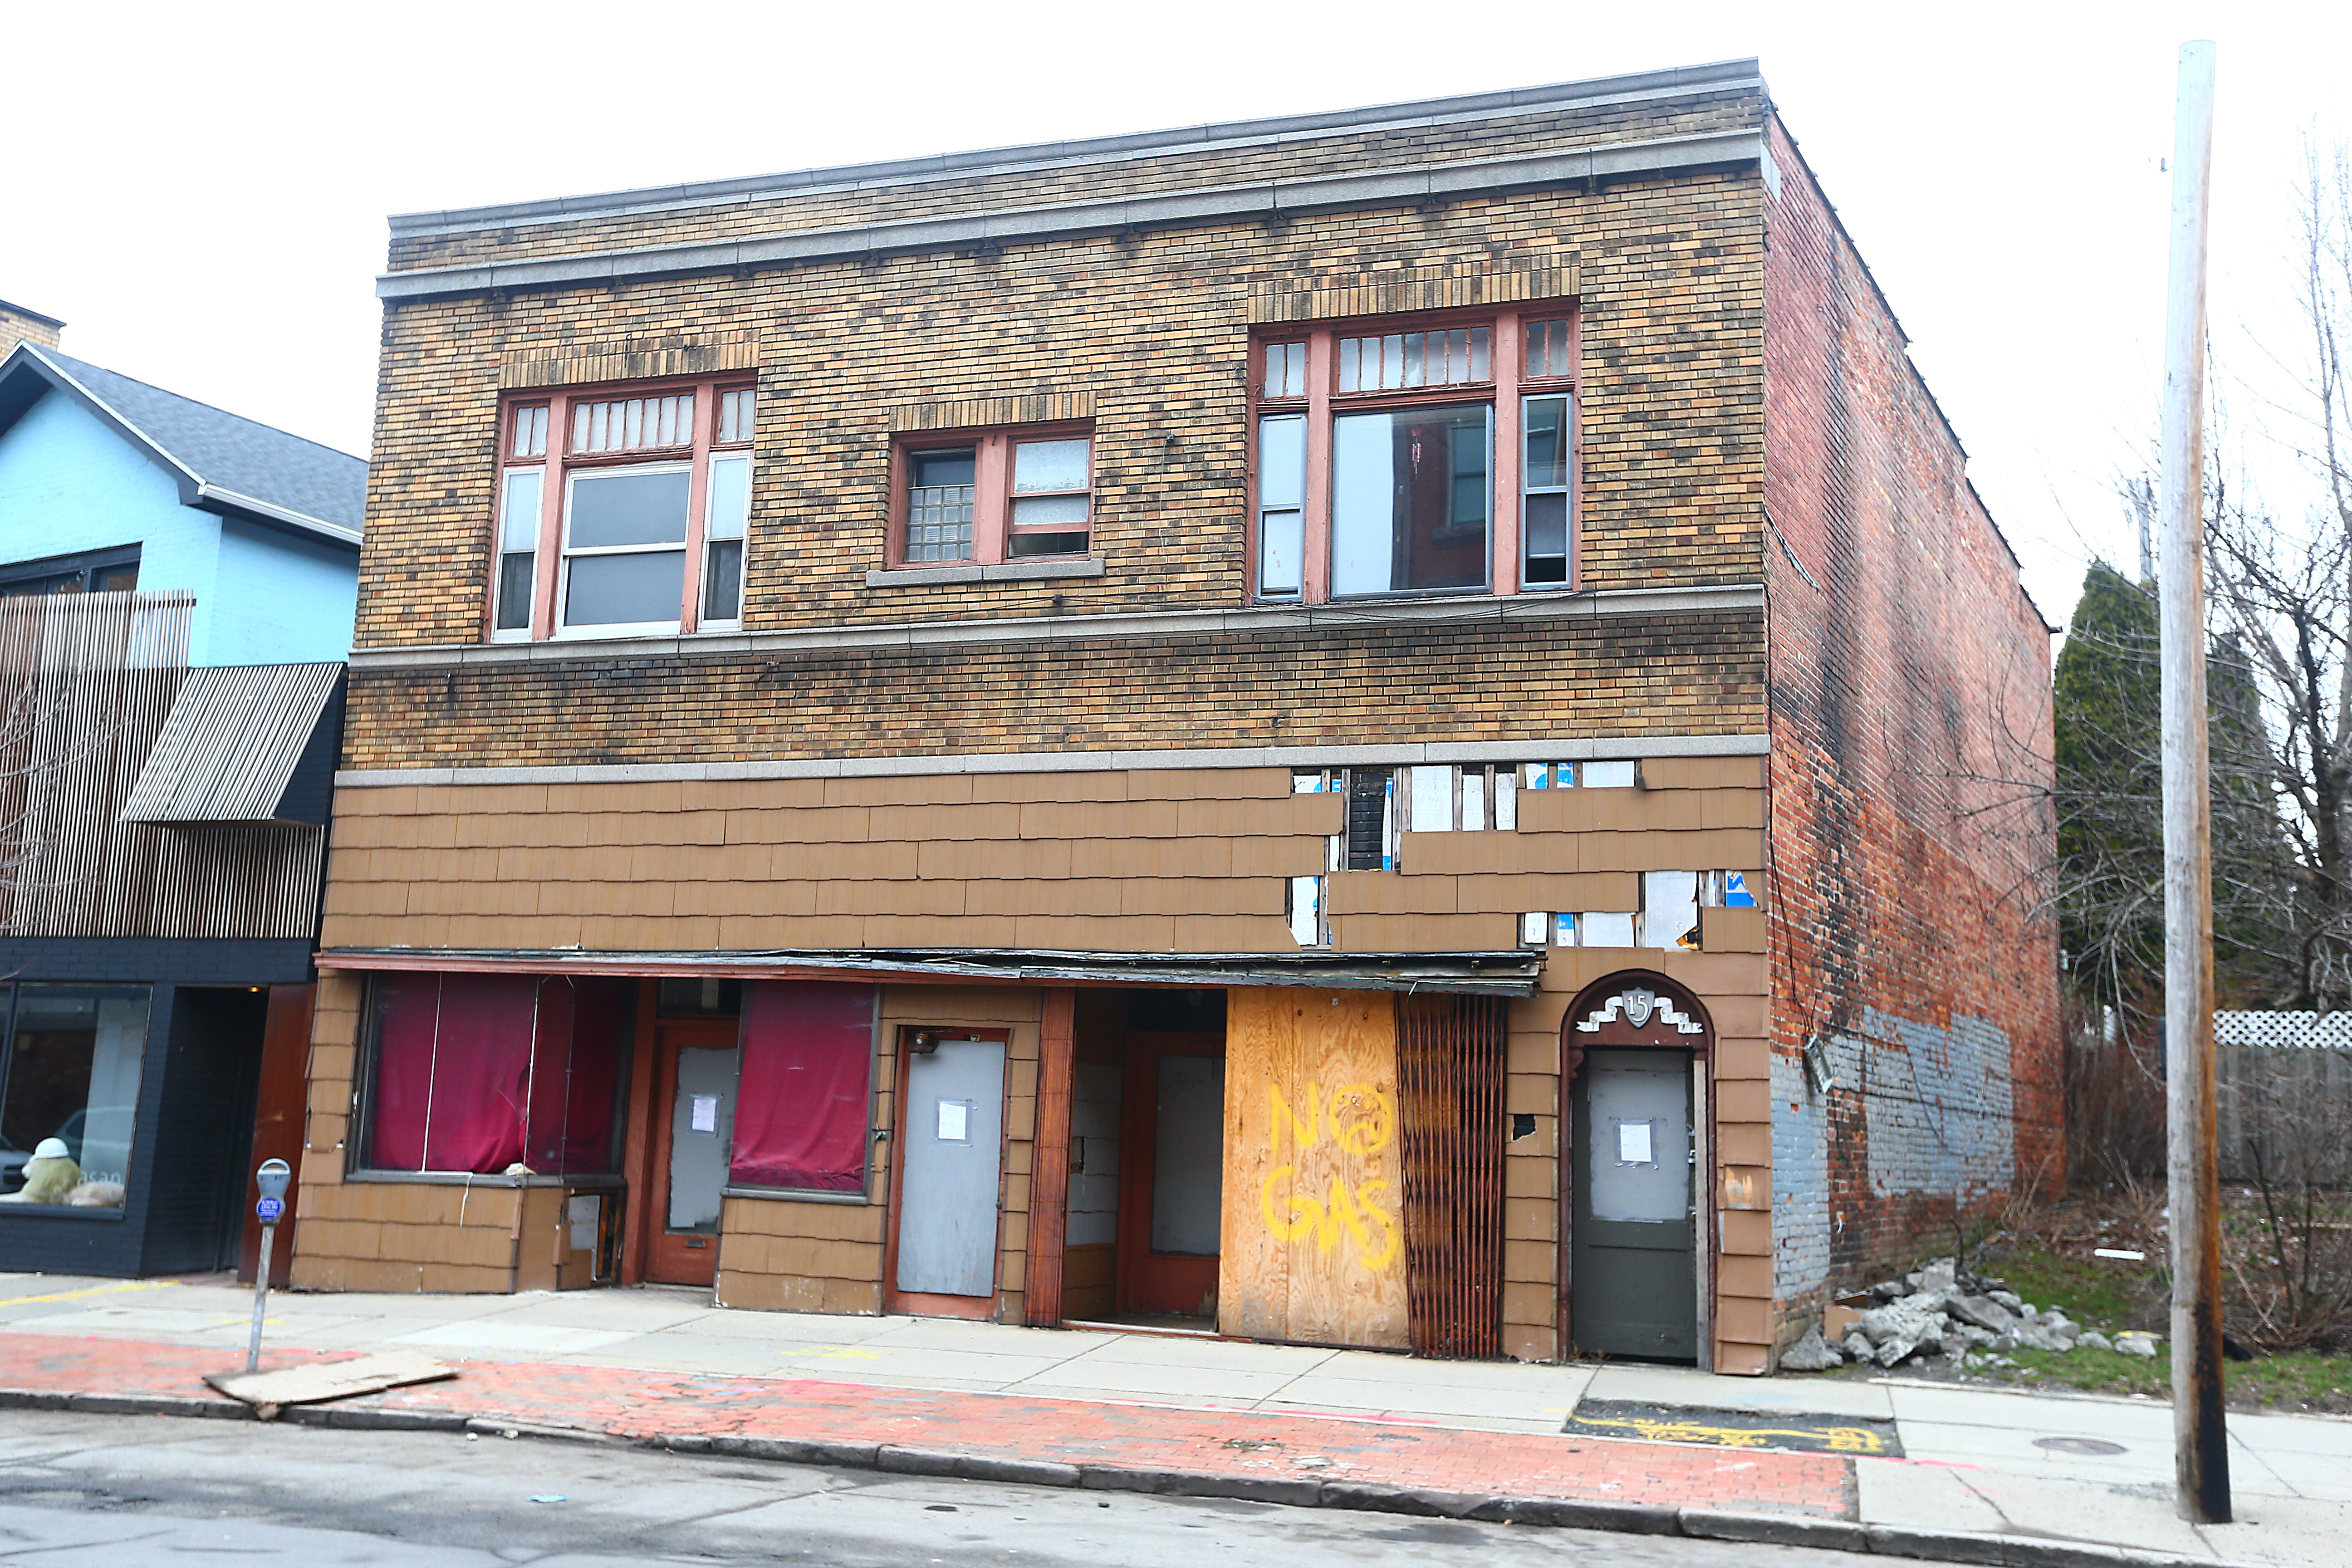 Owner May Wong had sought to demolish the two-story building at 15 Allen St., but the board's approval last week hinged on leaving the front wall standing to remain part of a streetscape that preservationists are vigilantly trying to keep intact. (John Hickey/Buffalo News)